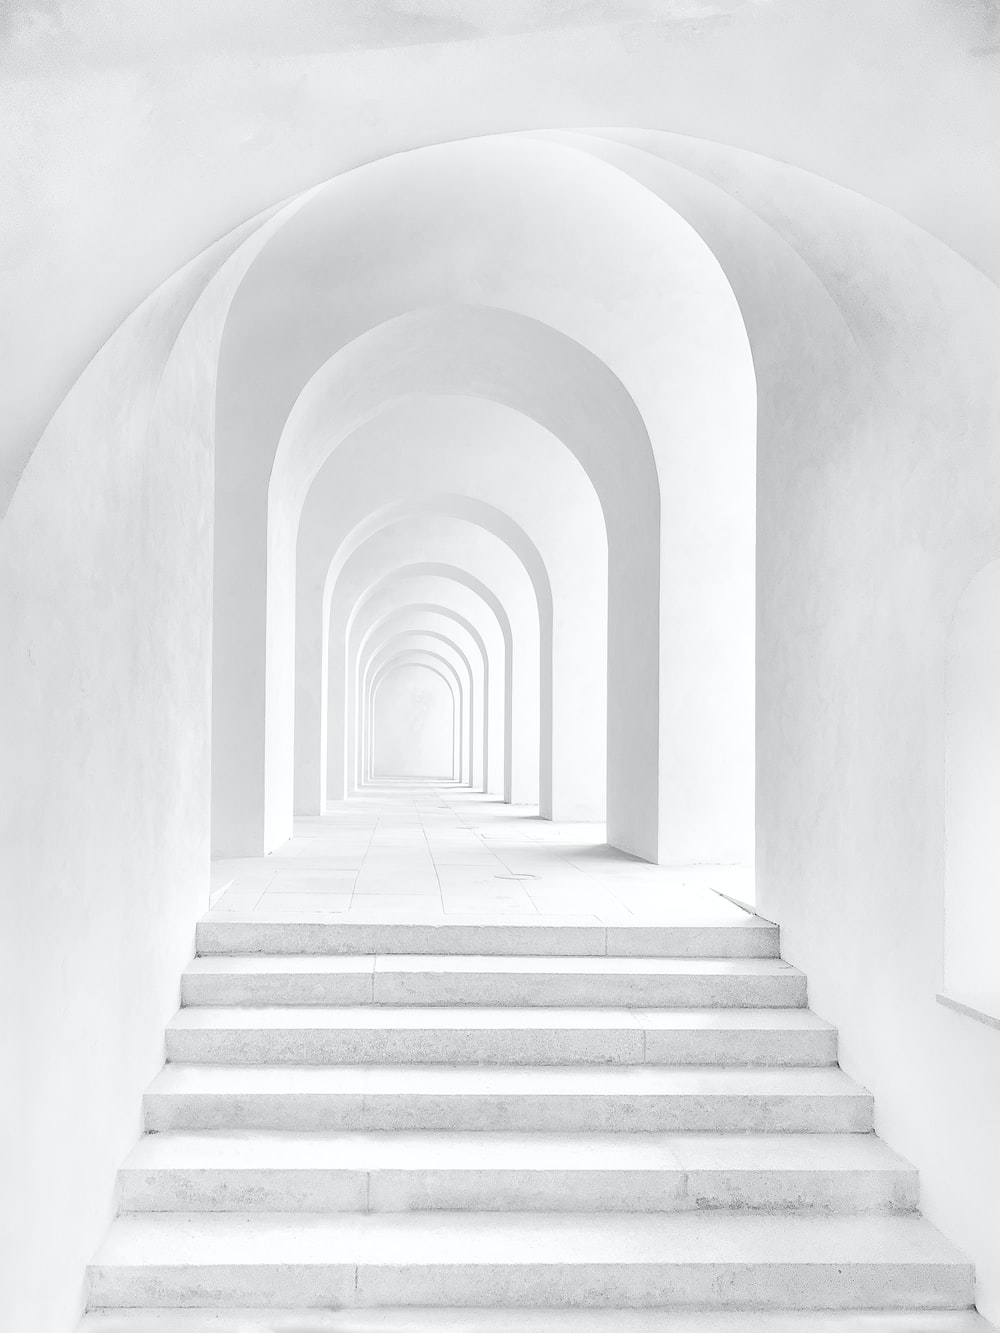 900+ White Background Images: Download HD Backgrounds on Unsplash